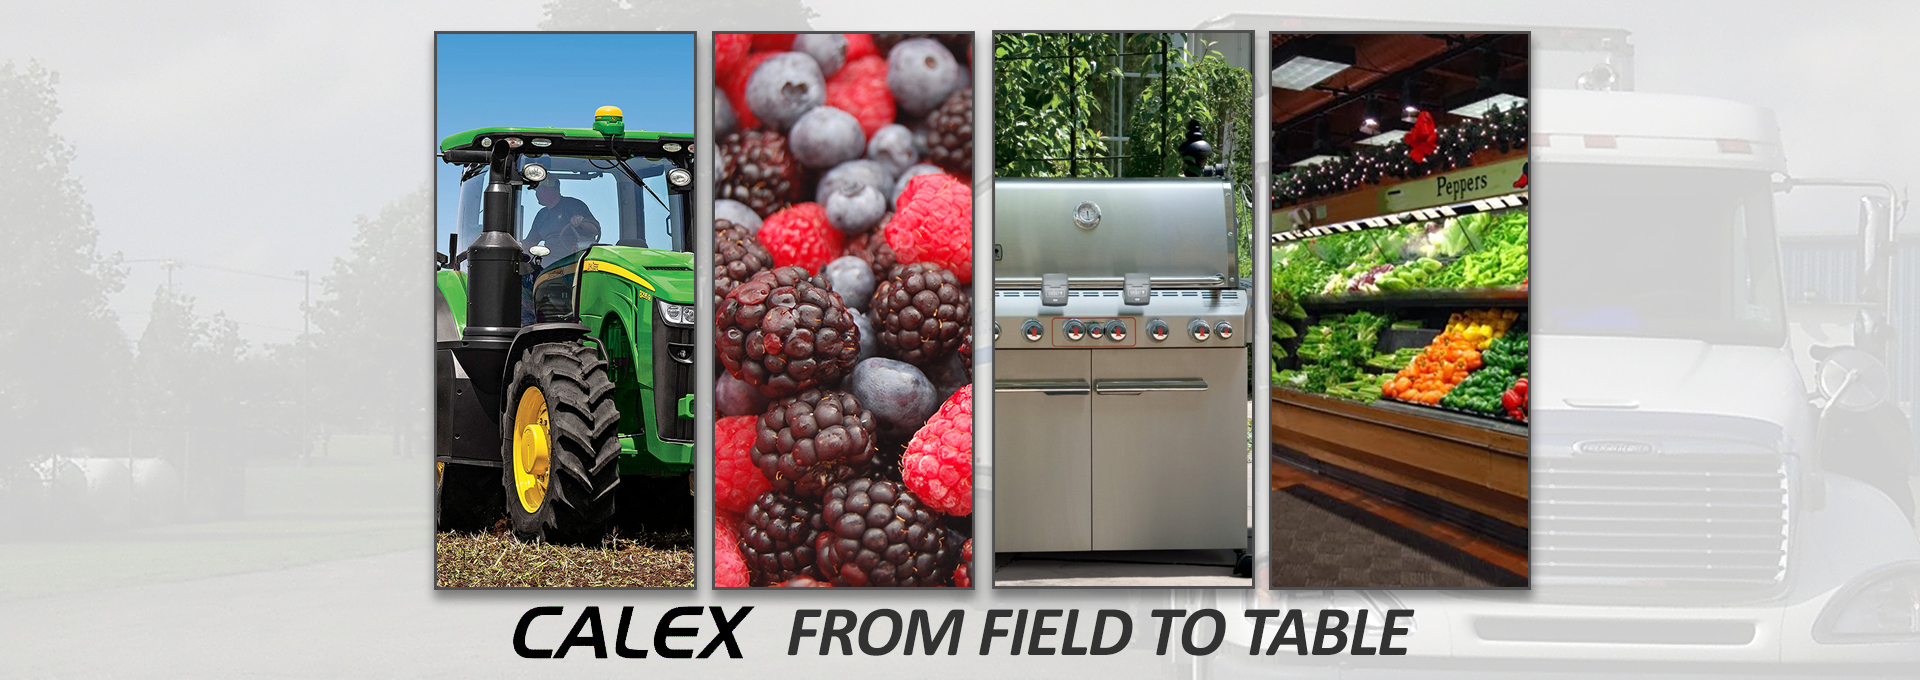 calex-from-field-to-table